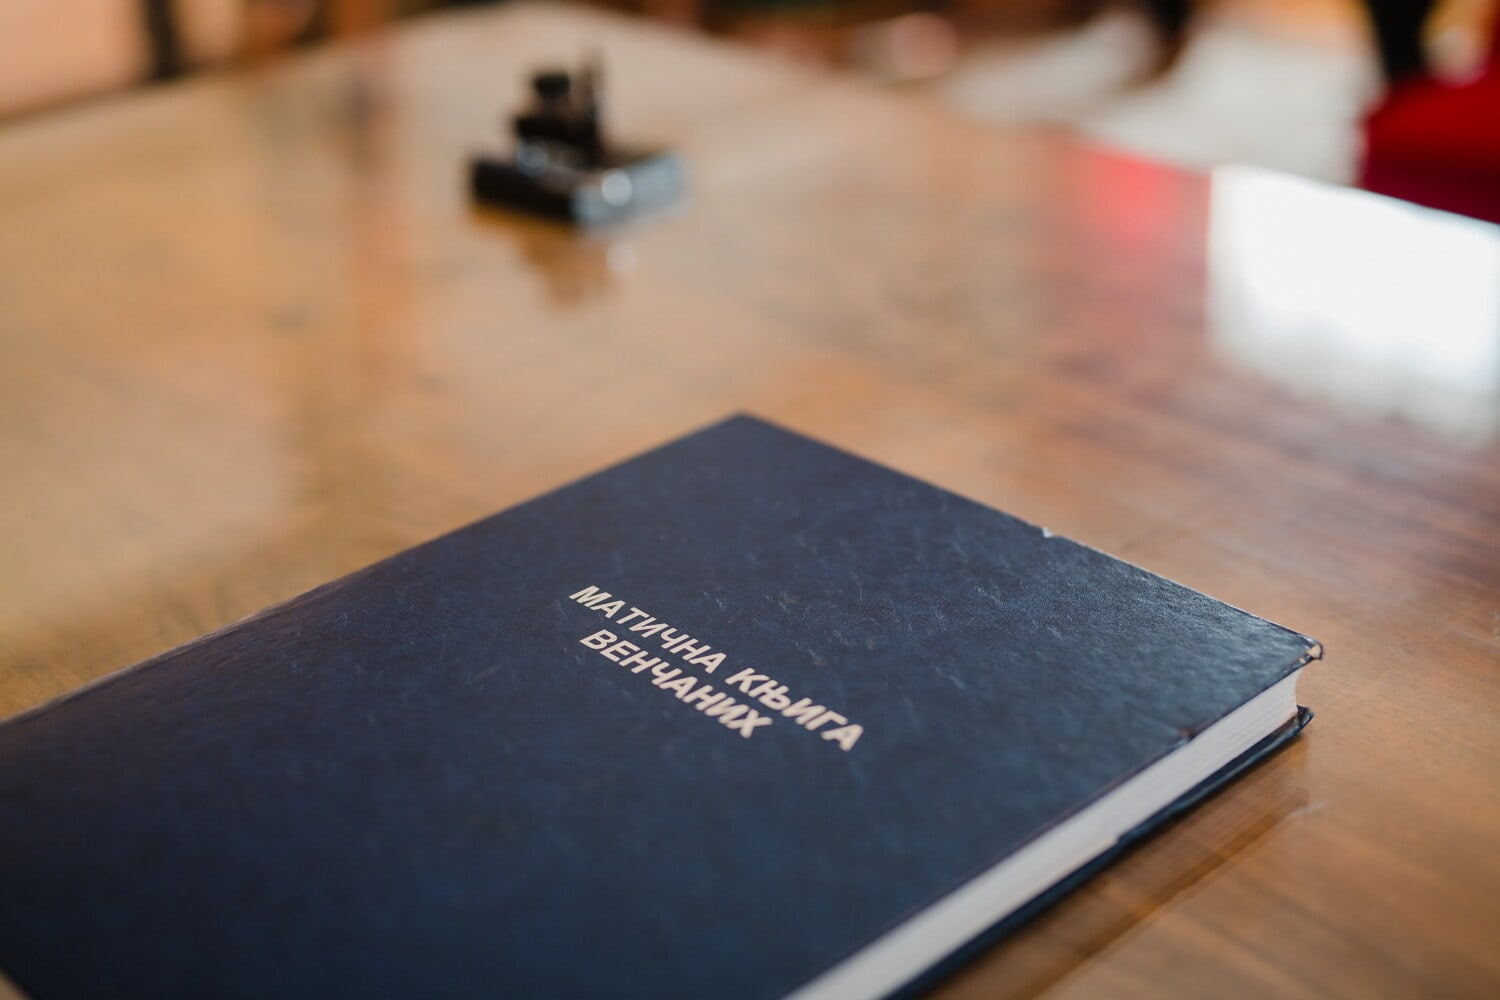 wedding, book, law, marriage, contract, notebook, wood, indoors, table, business